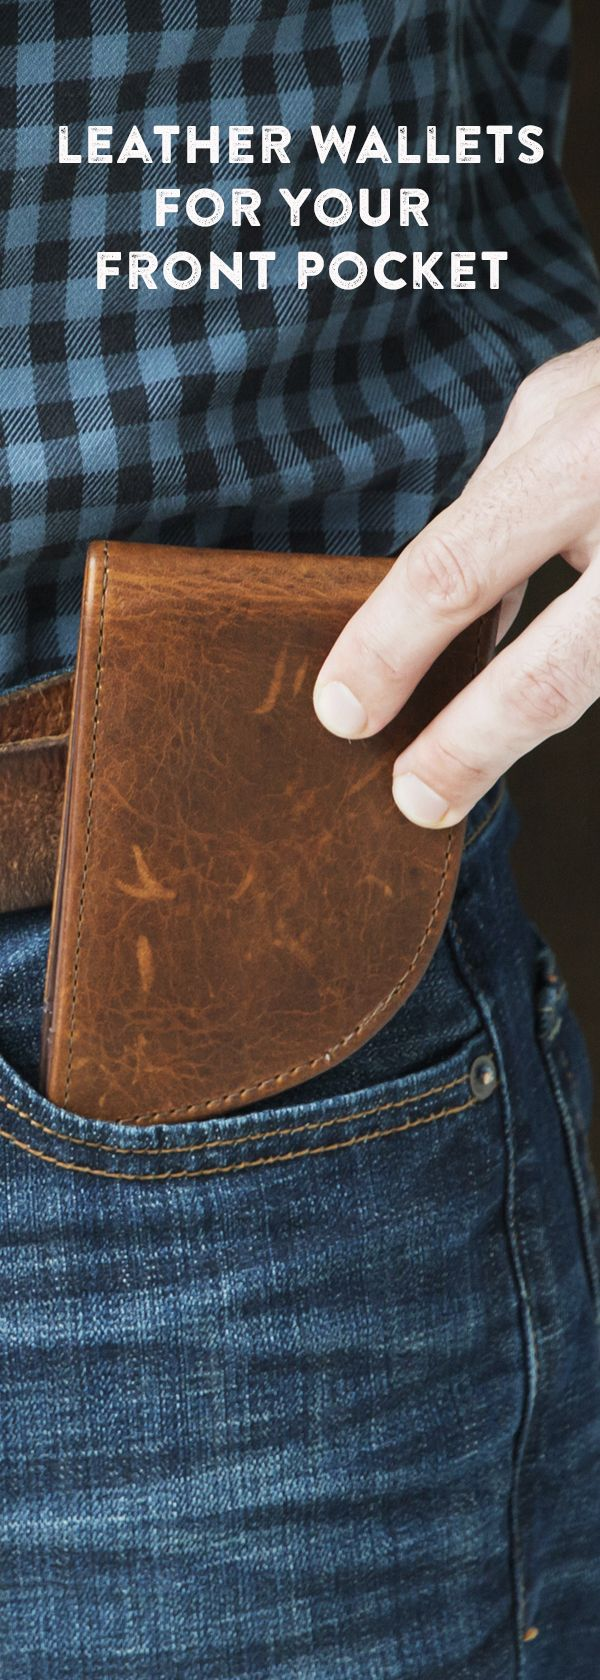 Front pocket wallets are safer—and can be less stressful on your back. These leather wallets are made in Maine and carefully designed to fit perfectly.